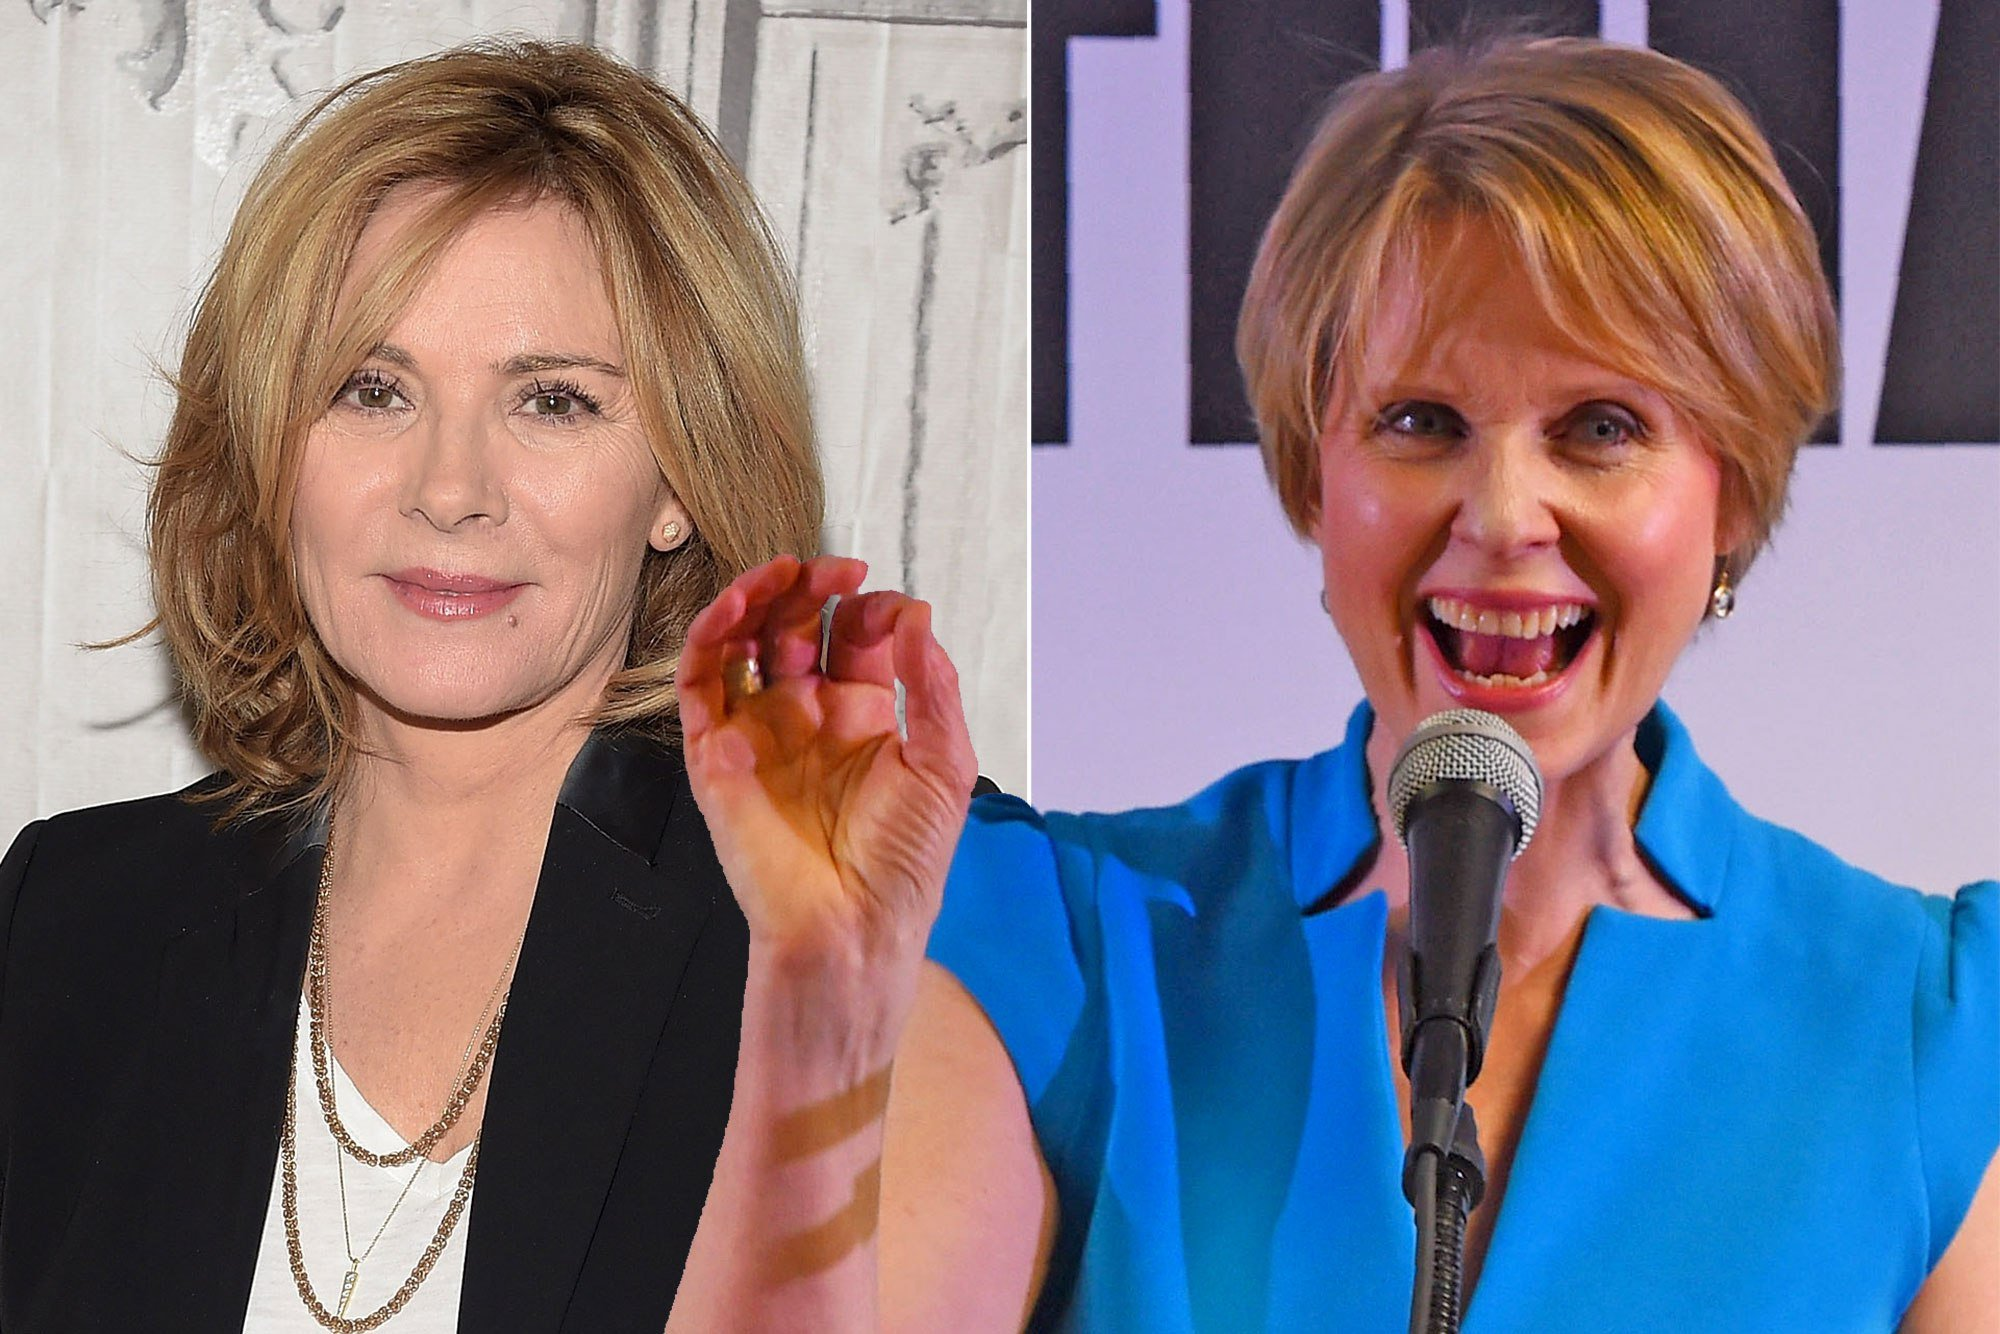 Kim Cattrall supports Cynthia Nixon's run for governor